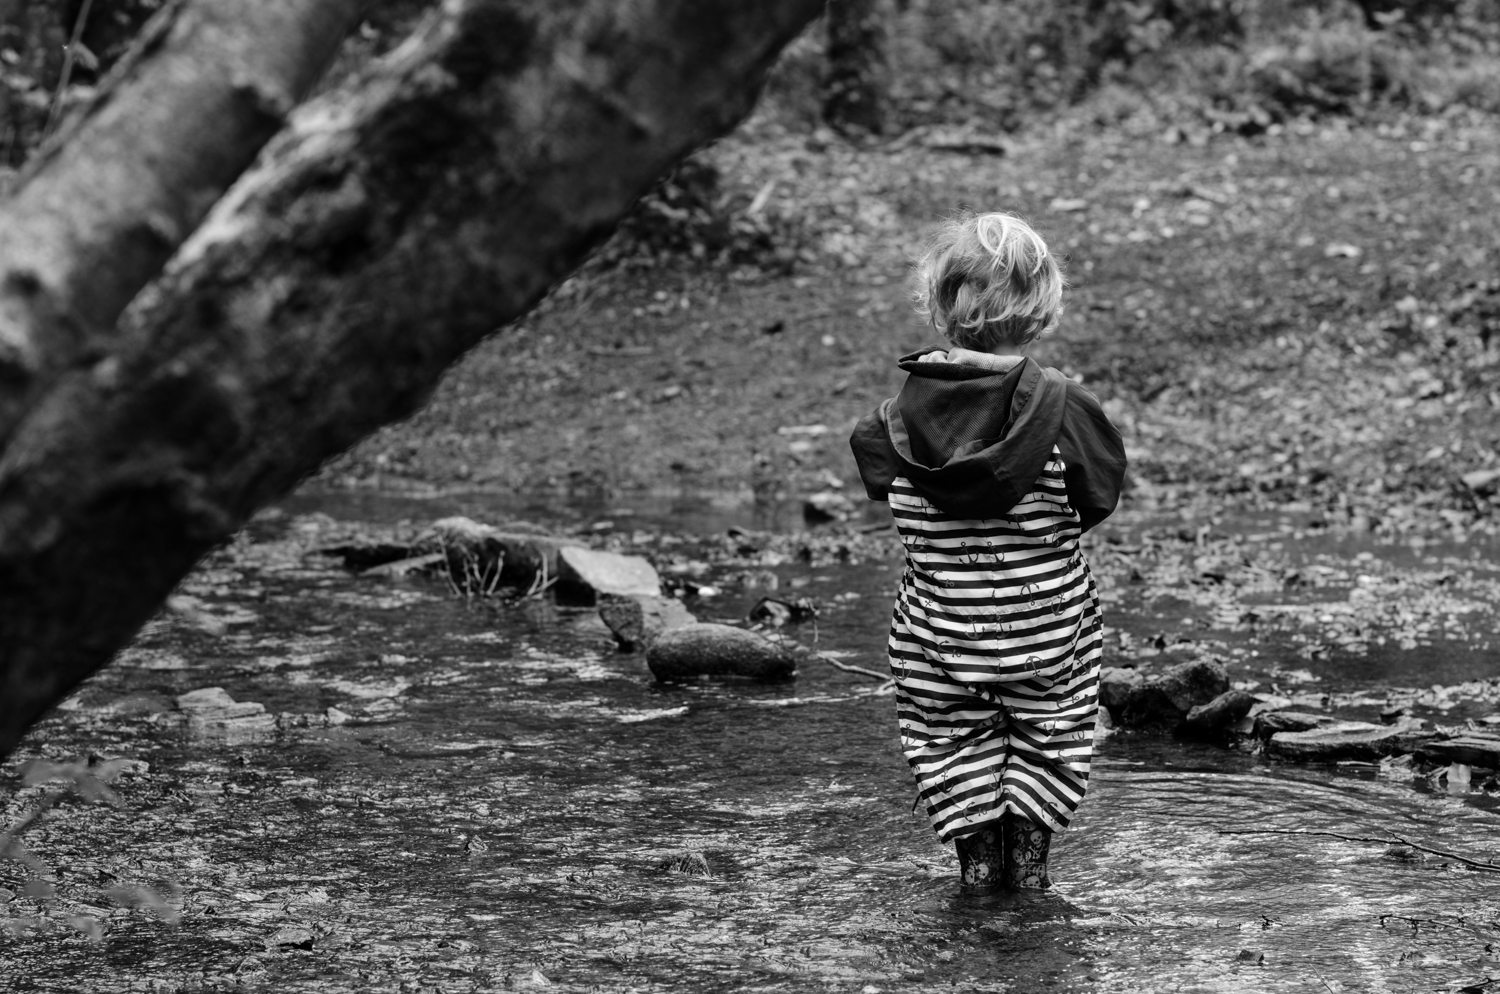 As my nephewstands and looks into the river